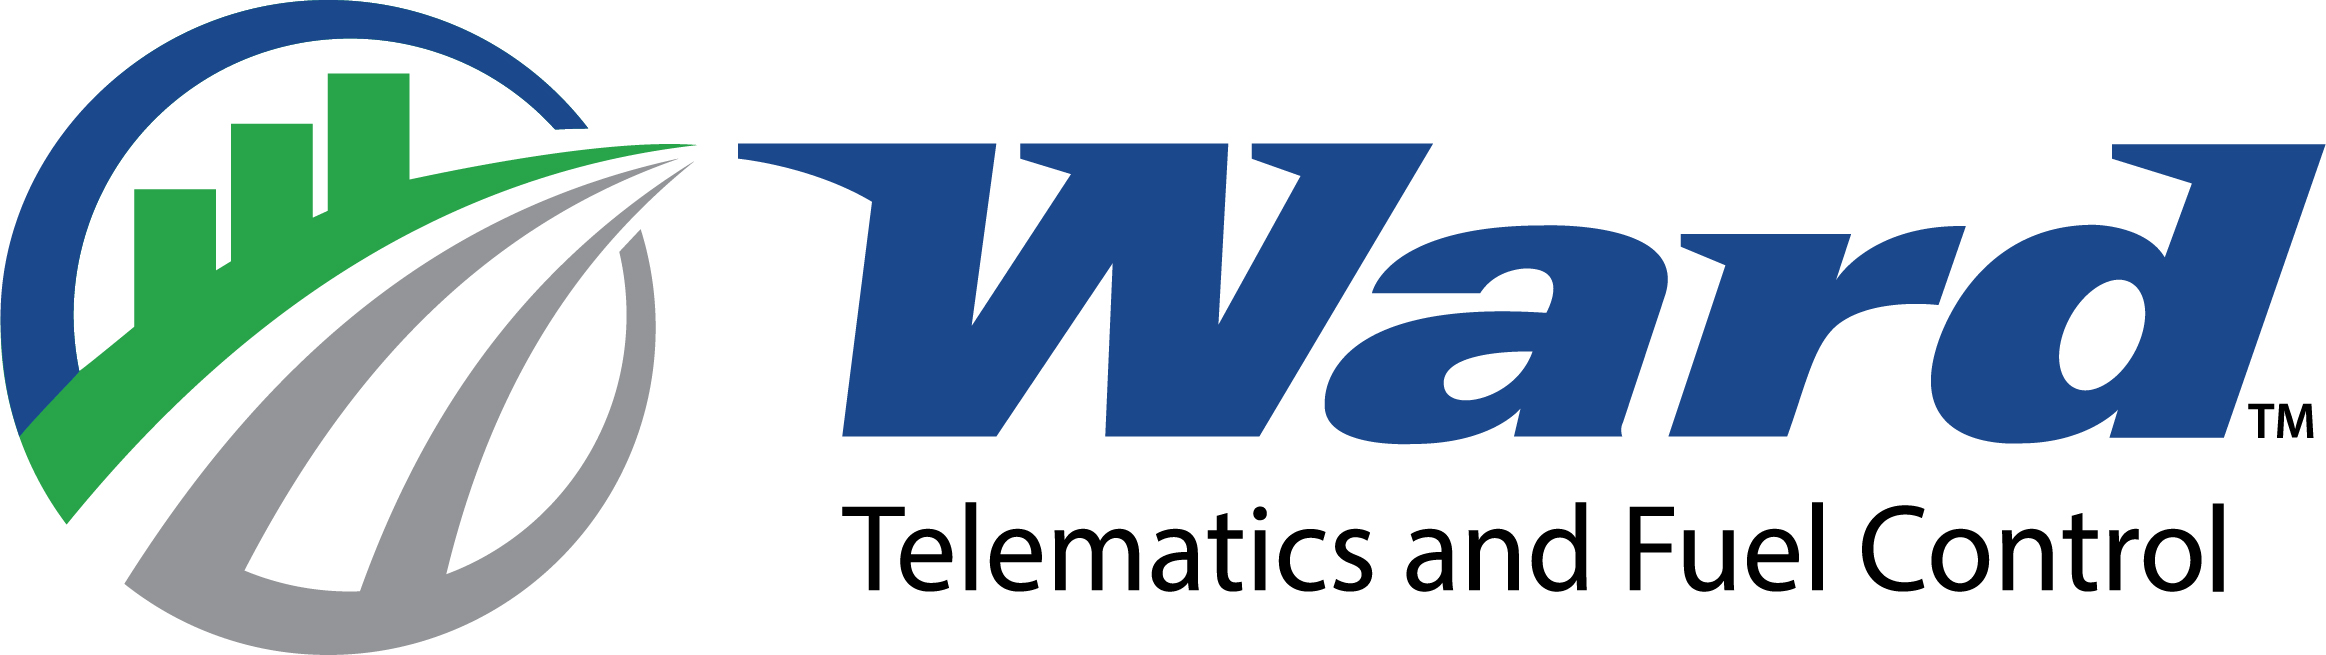 E.J. Ward Inc. Announces New Organizational Structure with the Formation of Two New Operating Business Groups